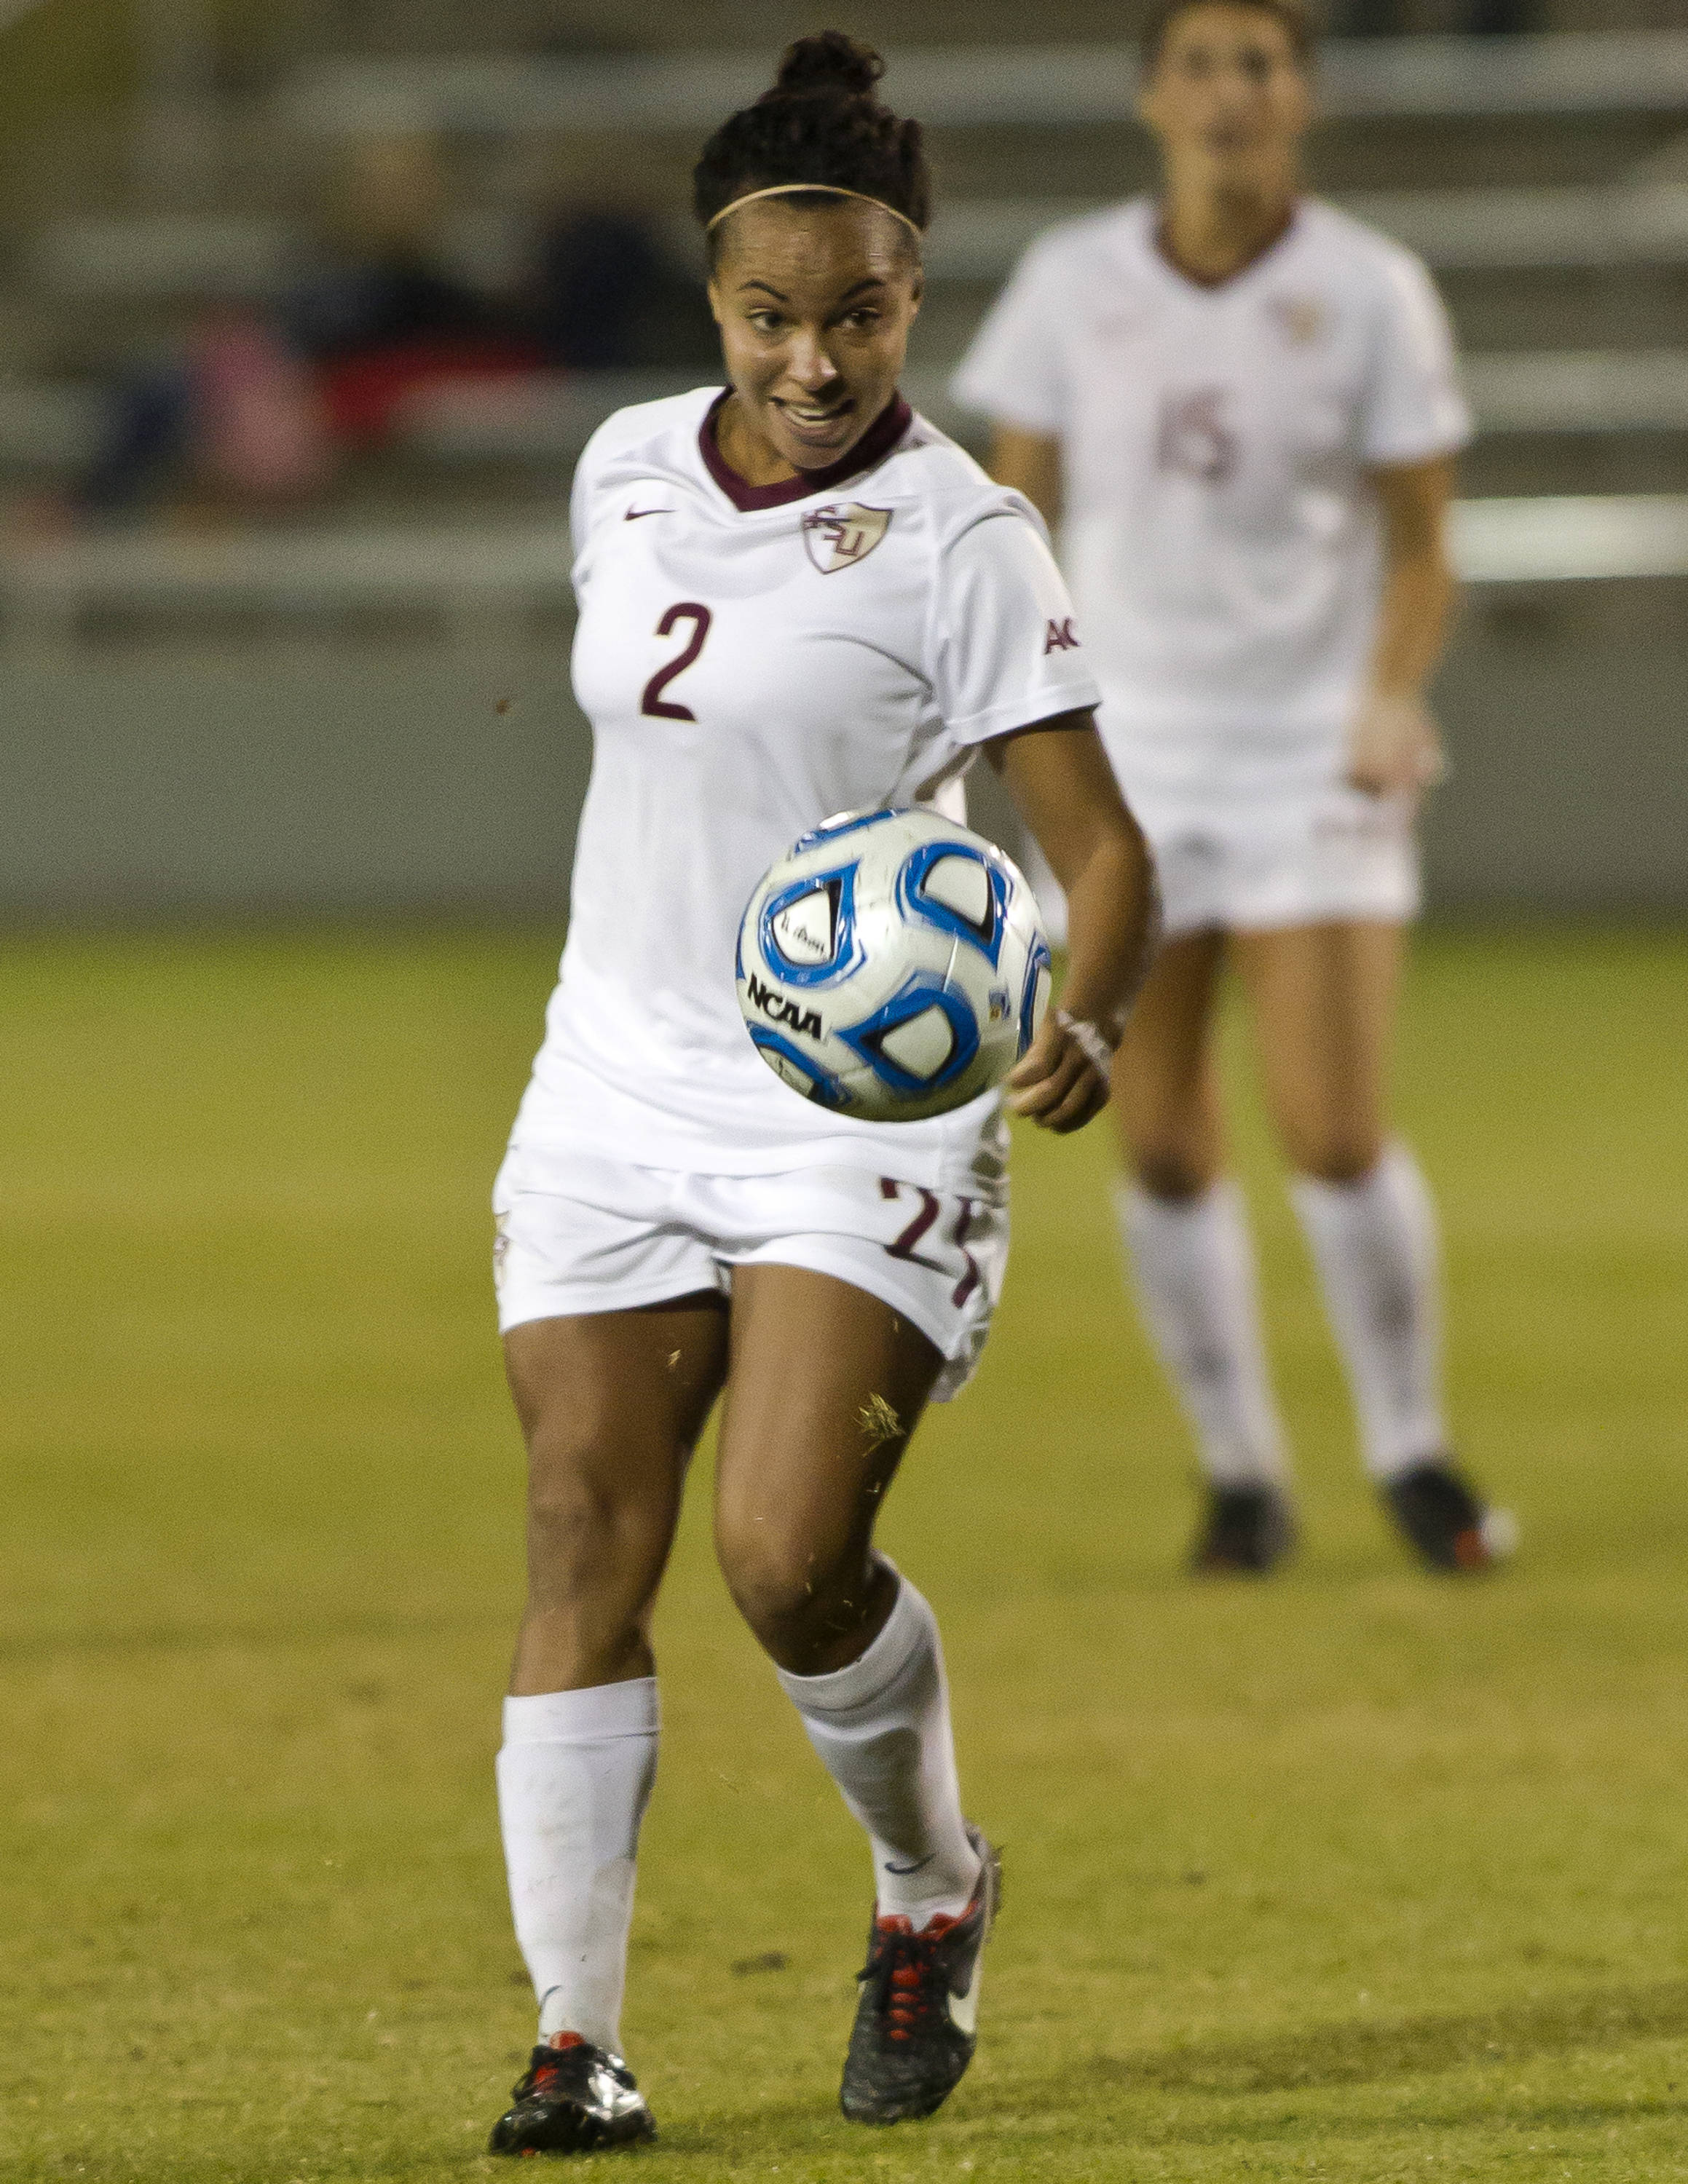 Ines Jaurena (2), FSU vs MVSU, 11/09/12. (Photo by Steve Musco)